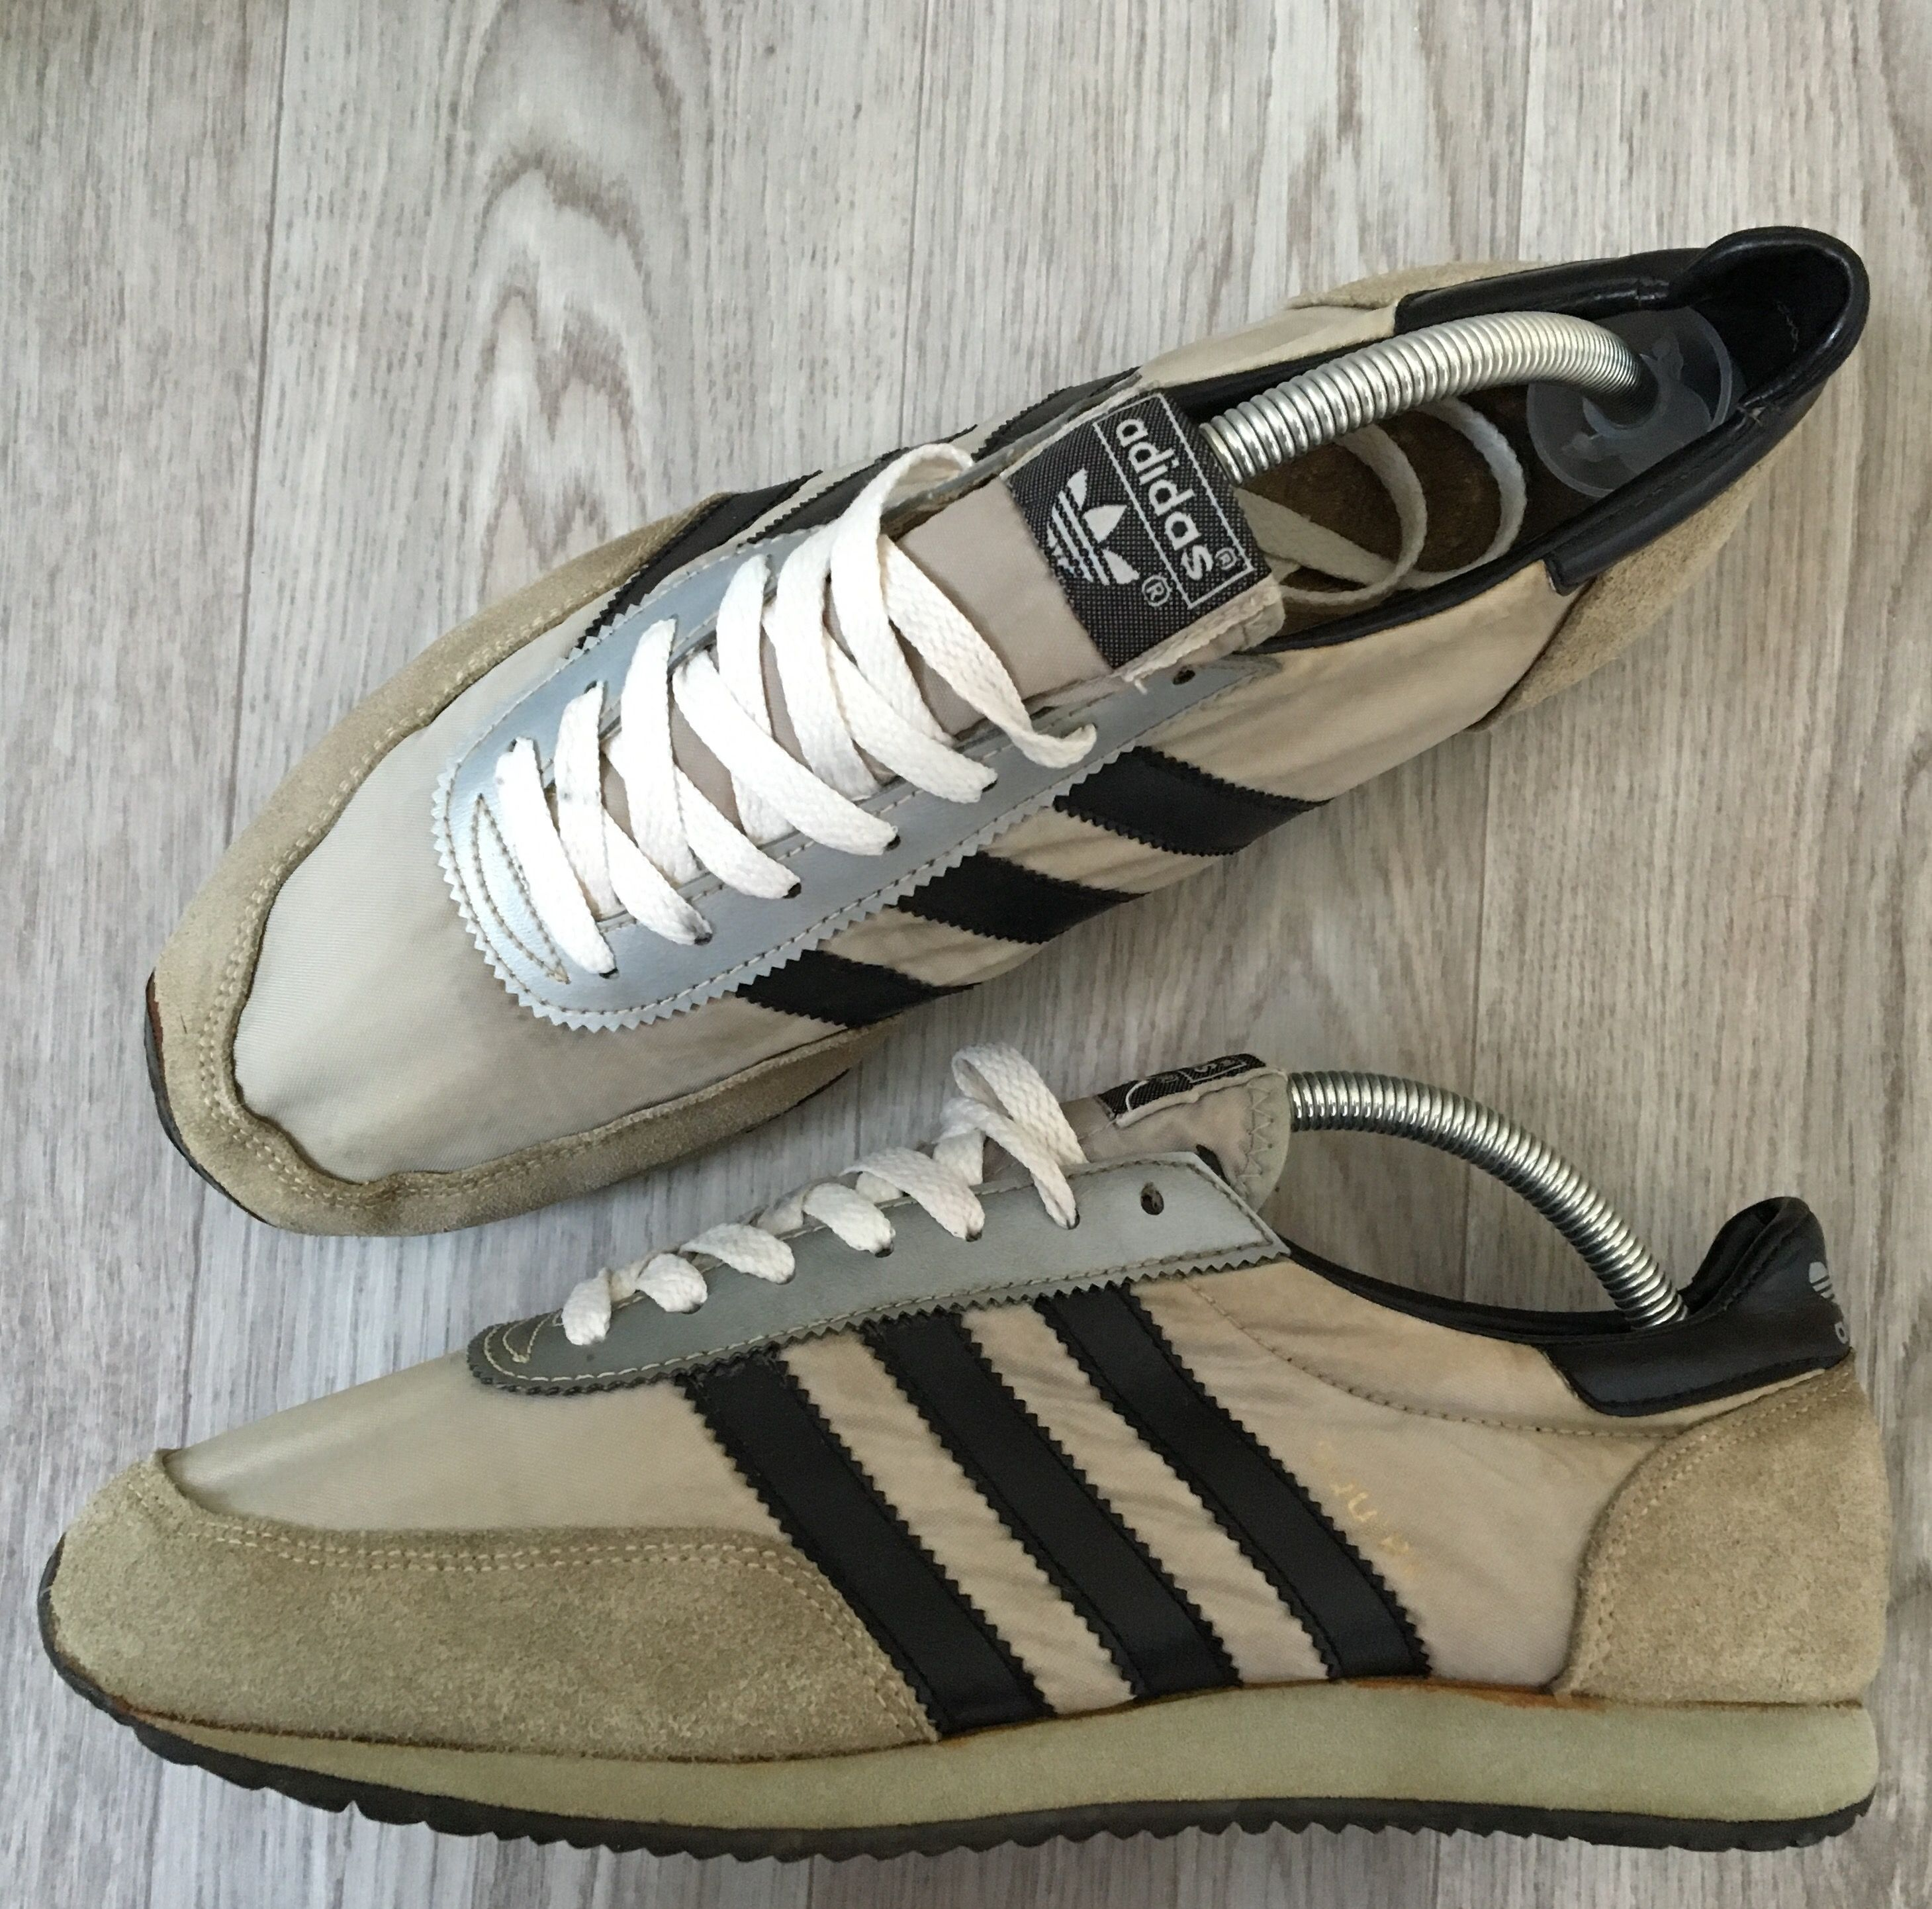 adidas shoes vintage 80s commercials levi's outlet californi